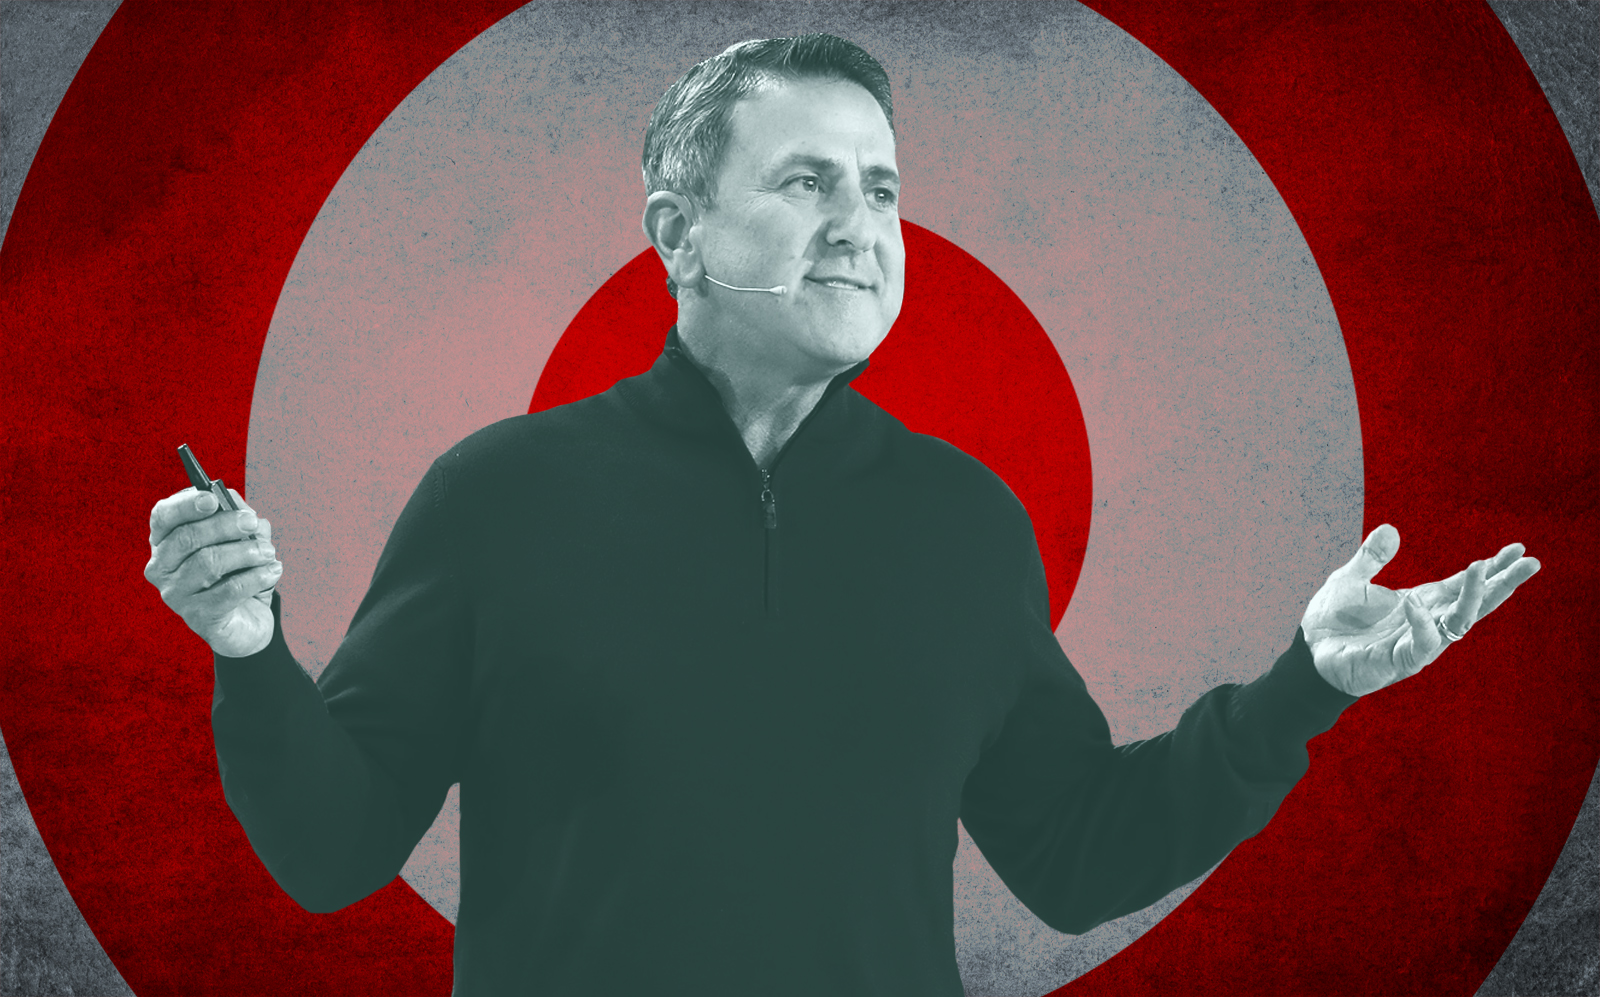 Target CEO Brian Cornell. (Getty)